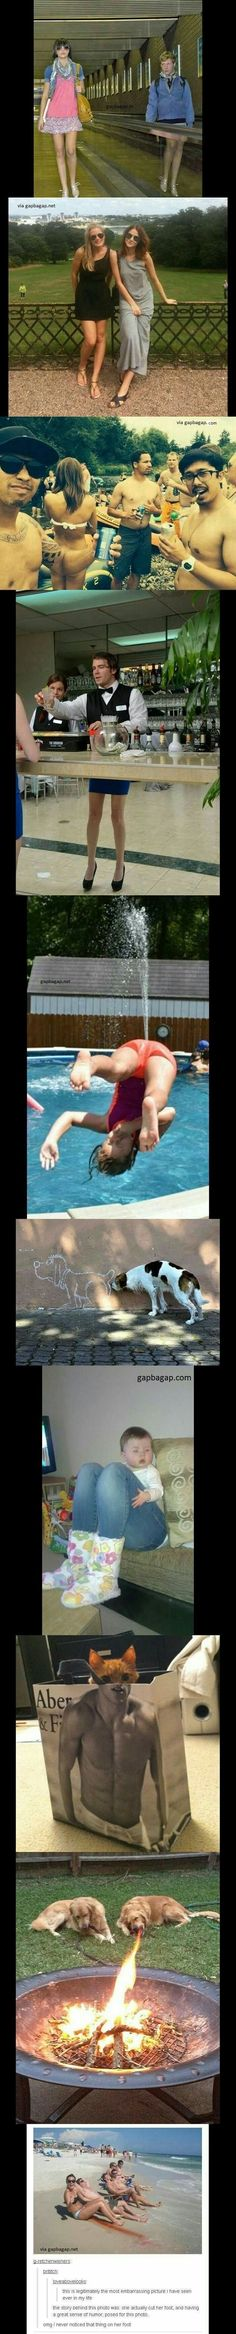 Top 10 Perfectly Timed Funny Pictures http://ibeebz.com